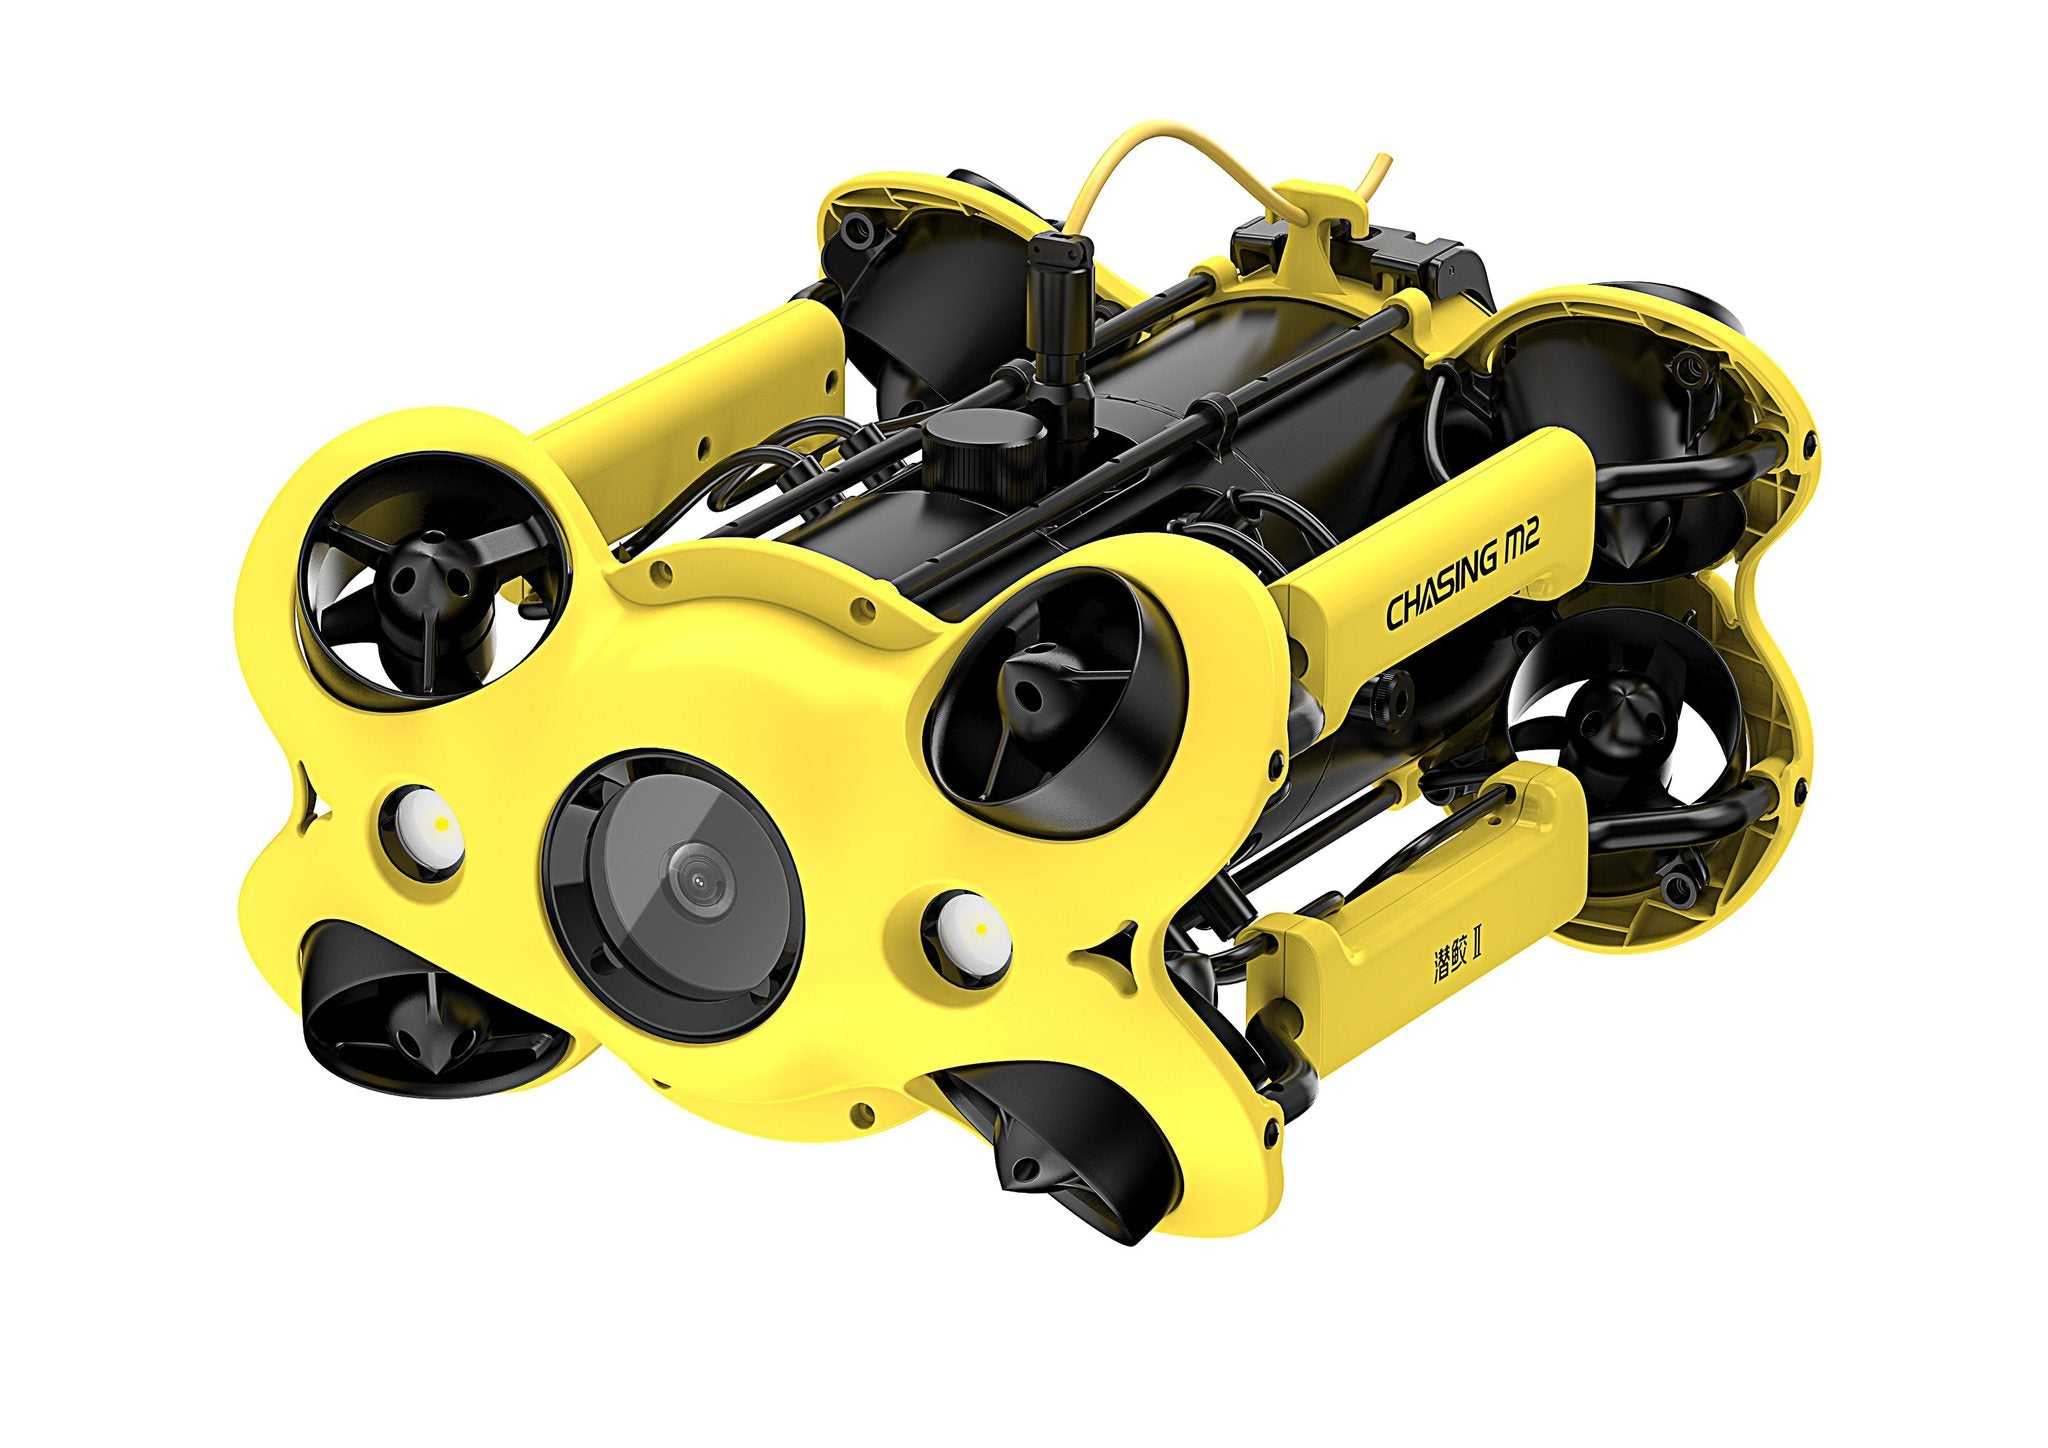 CHASING M2 ROV Professional Underwater Drone with a 4K UHD Camera